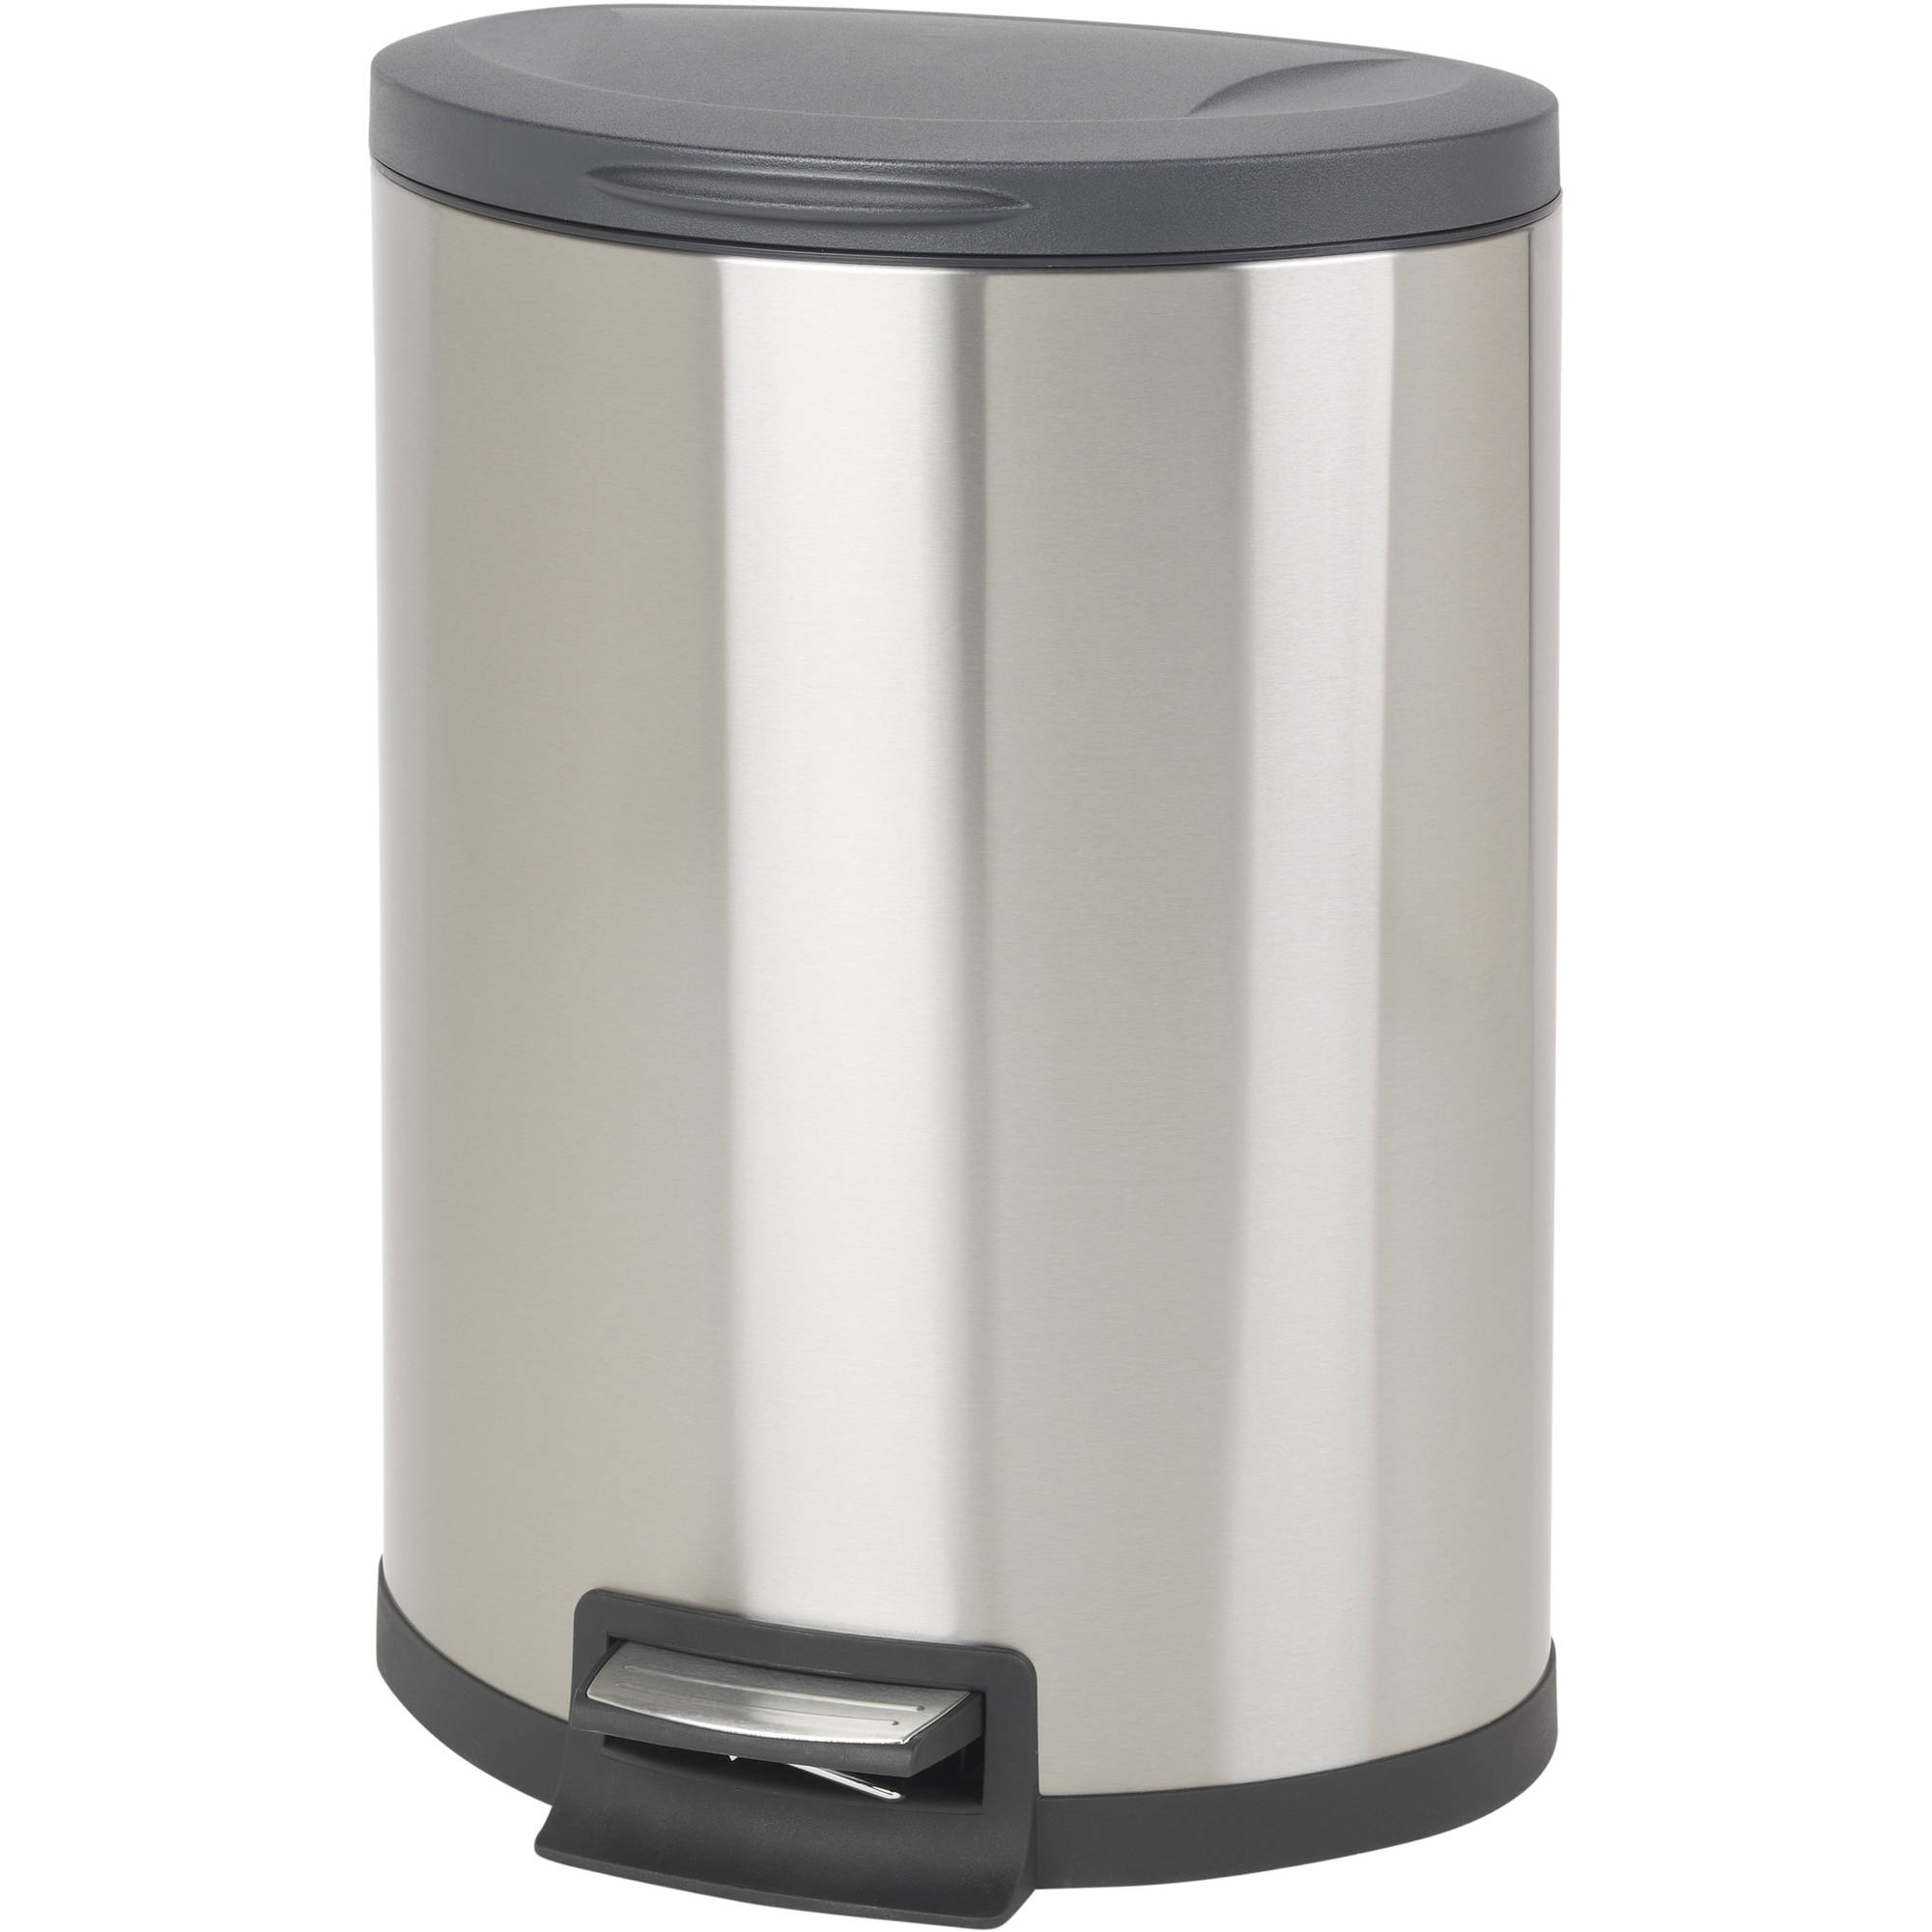 better homes and gardens 11.9-gallon semi round trash can